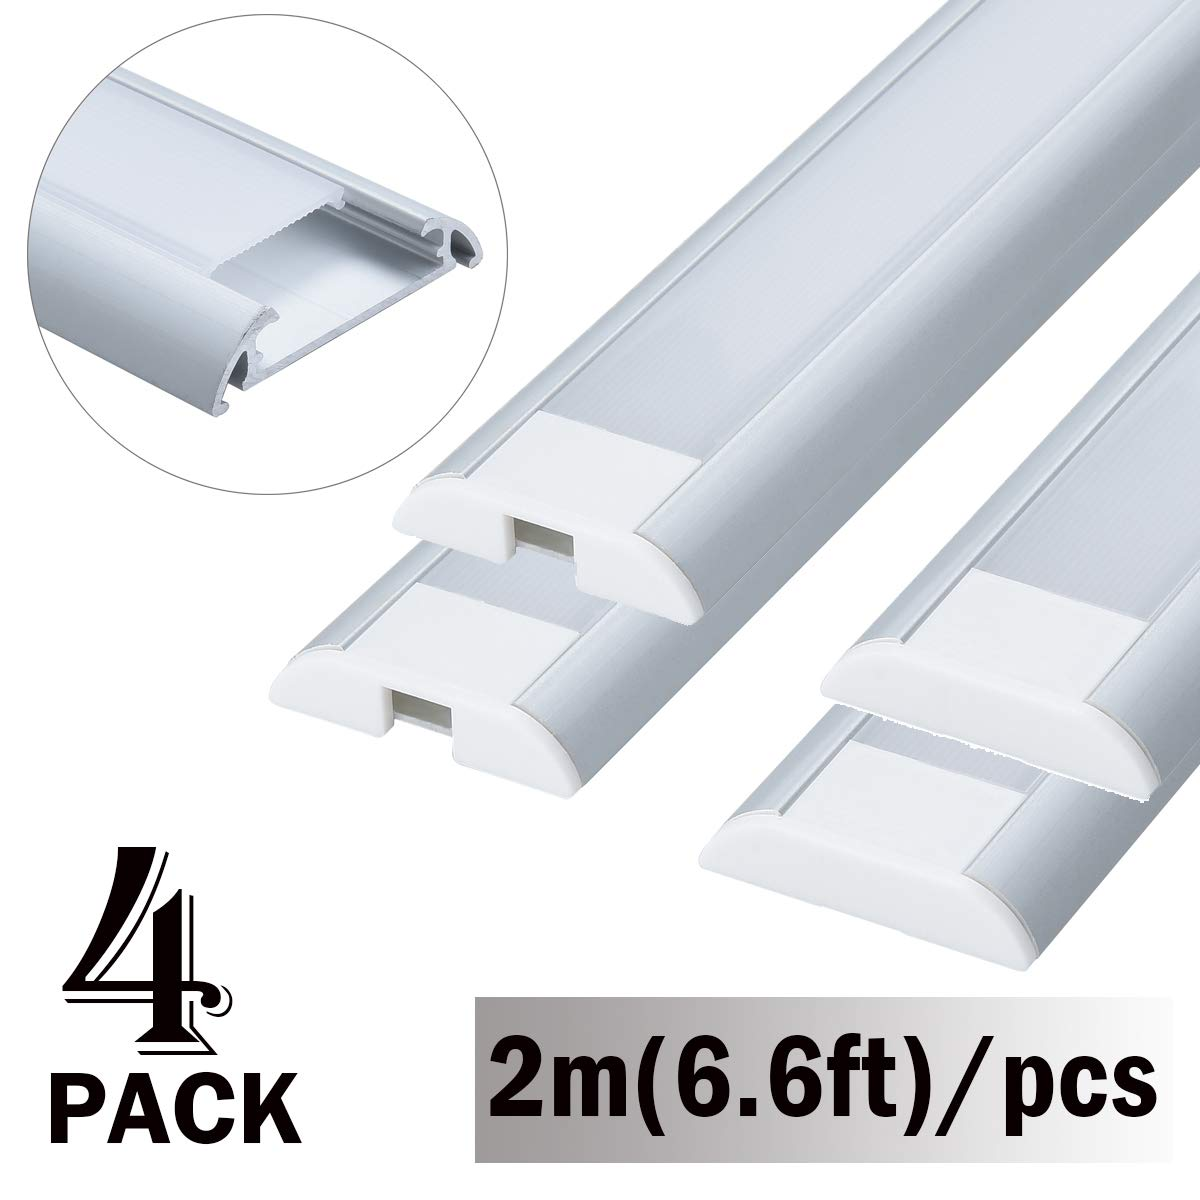 StarlandLed 4-Pack 2m/6.6FT LED Aluminum Channel Wide for LED Strip Double Row 5050,Fit for Philips Hue Lightstrip Plus 2nd Generation,Perfect for Task Under Cabinet Lighting